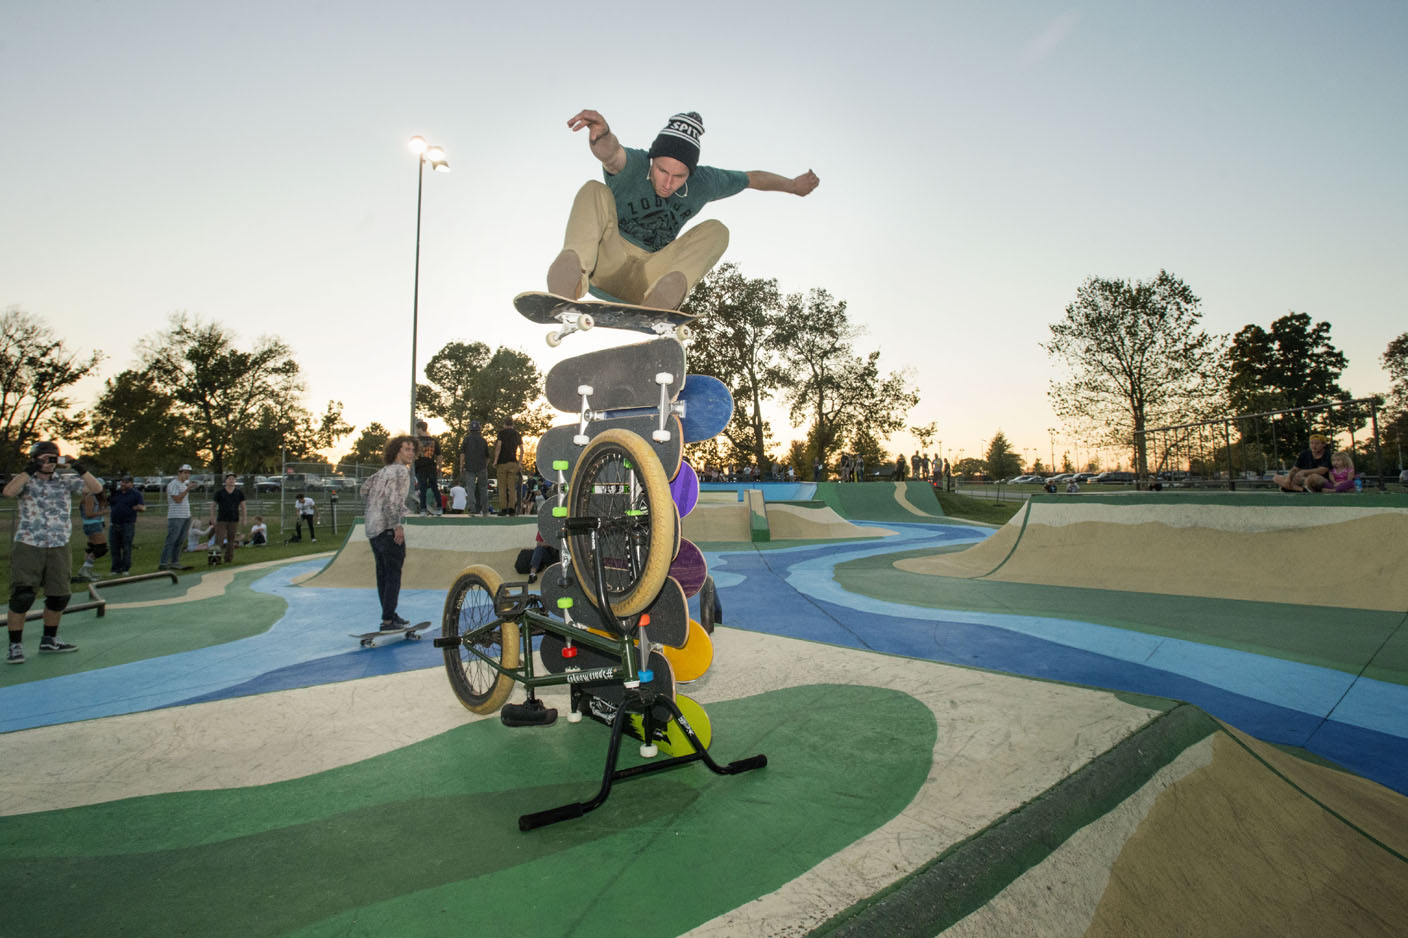 Collaboration ignites skate park beautification project